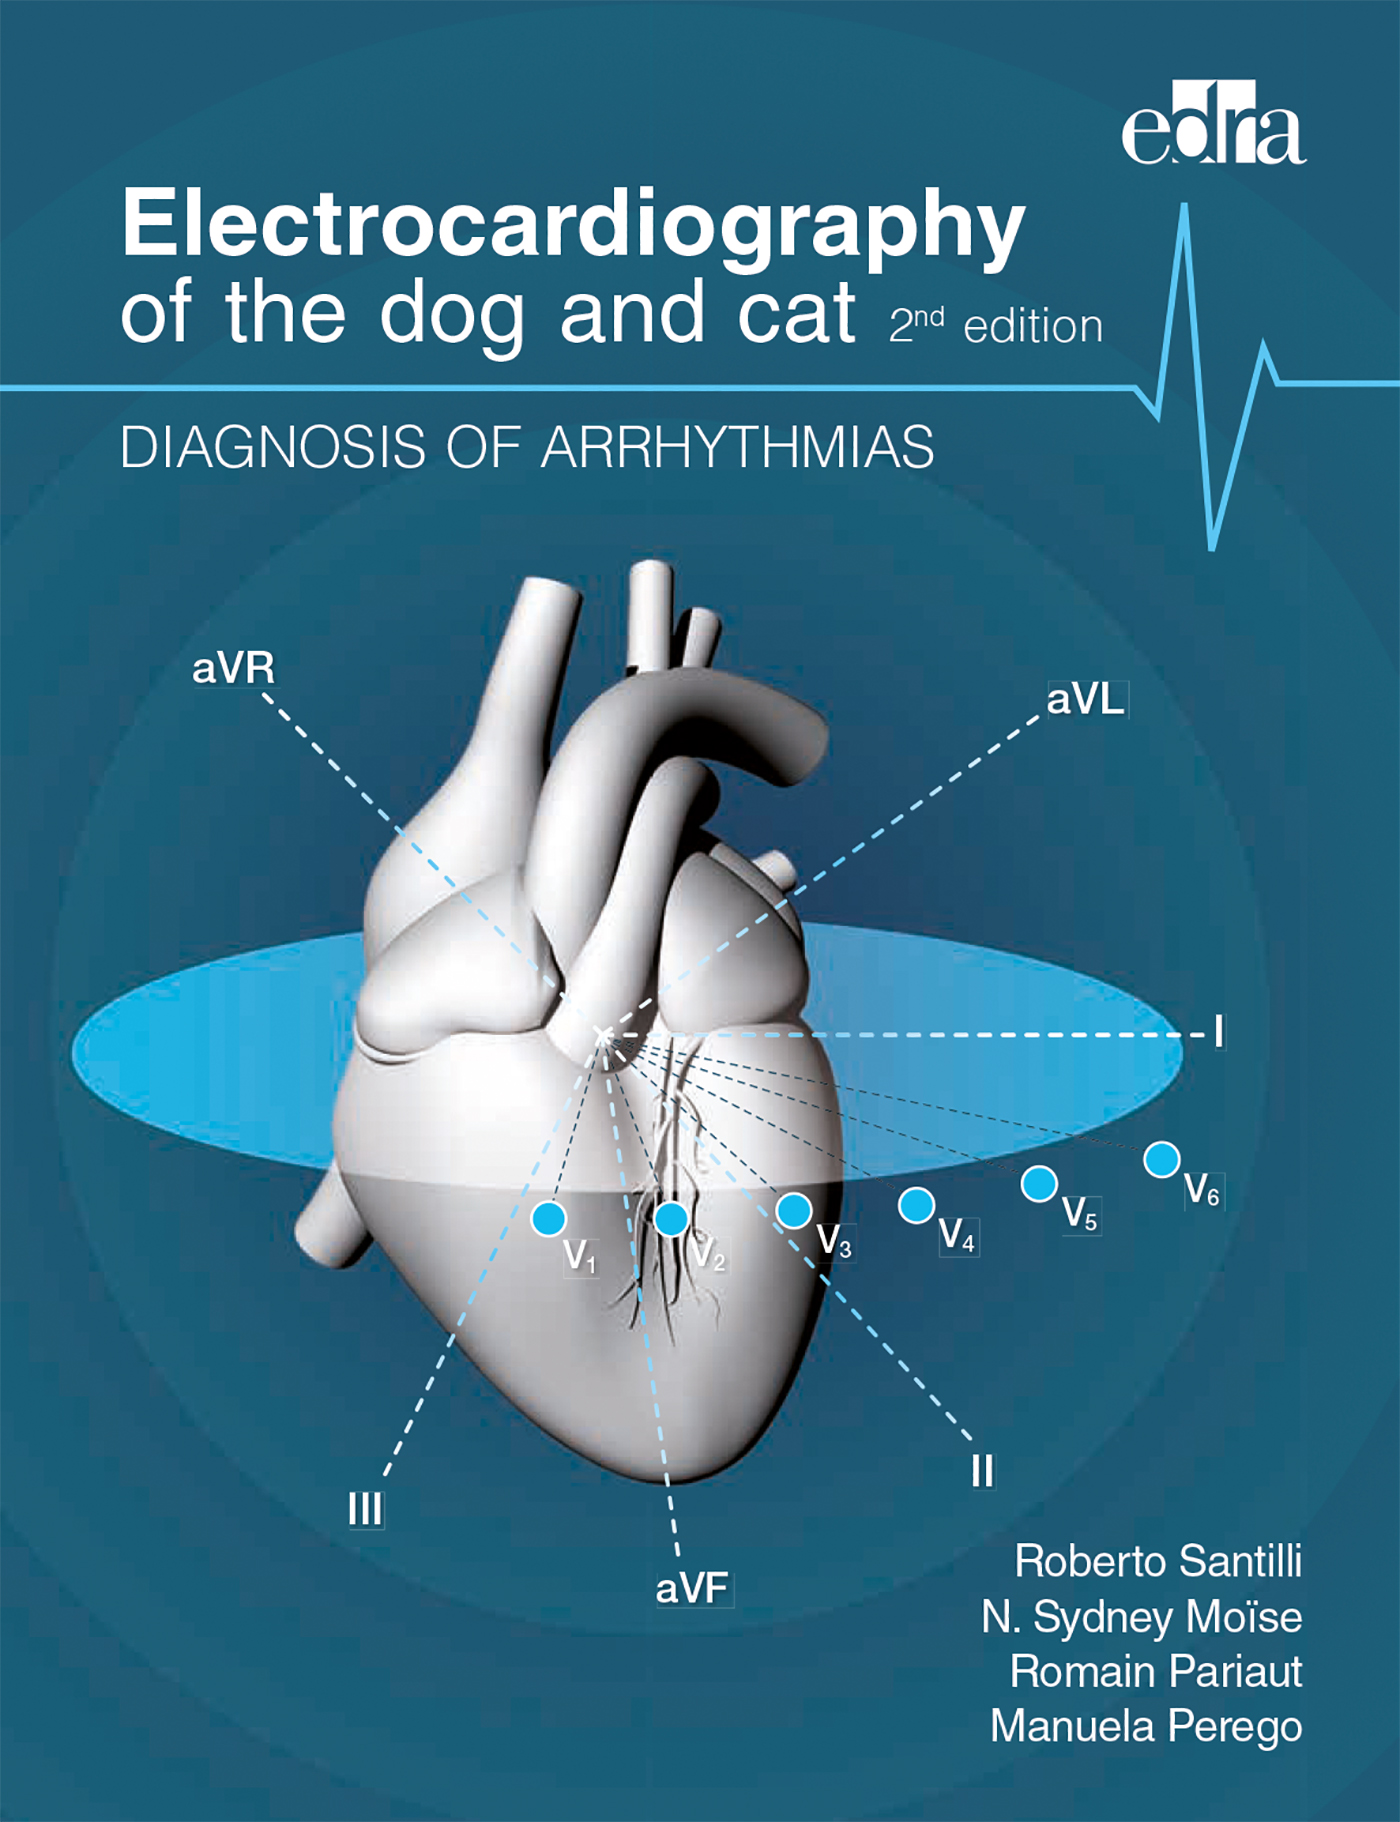 ELECTROCARDIOGRAPHY OF THE DOG AND CAT